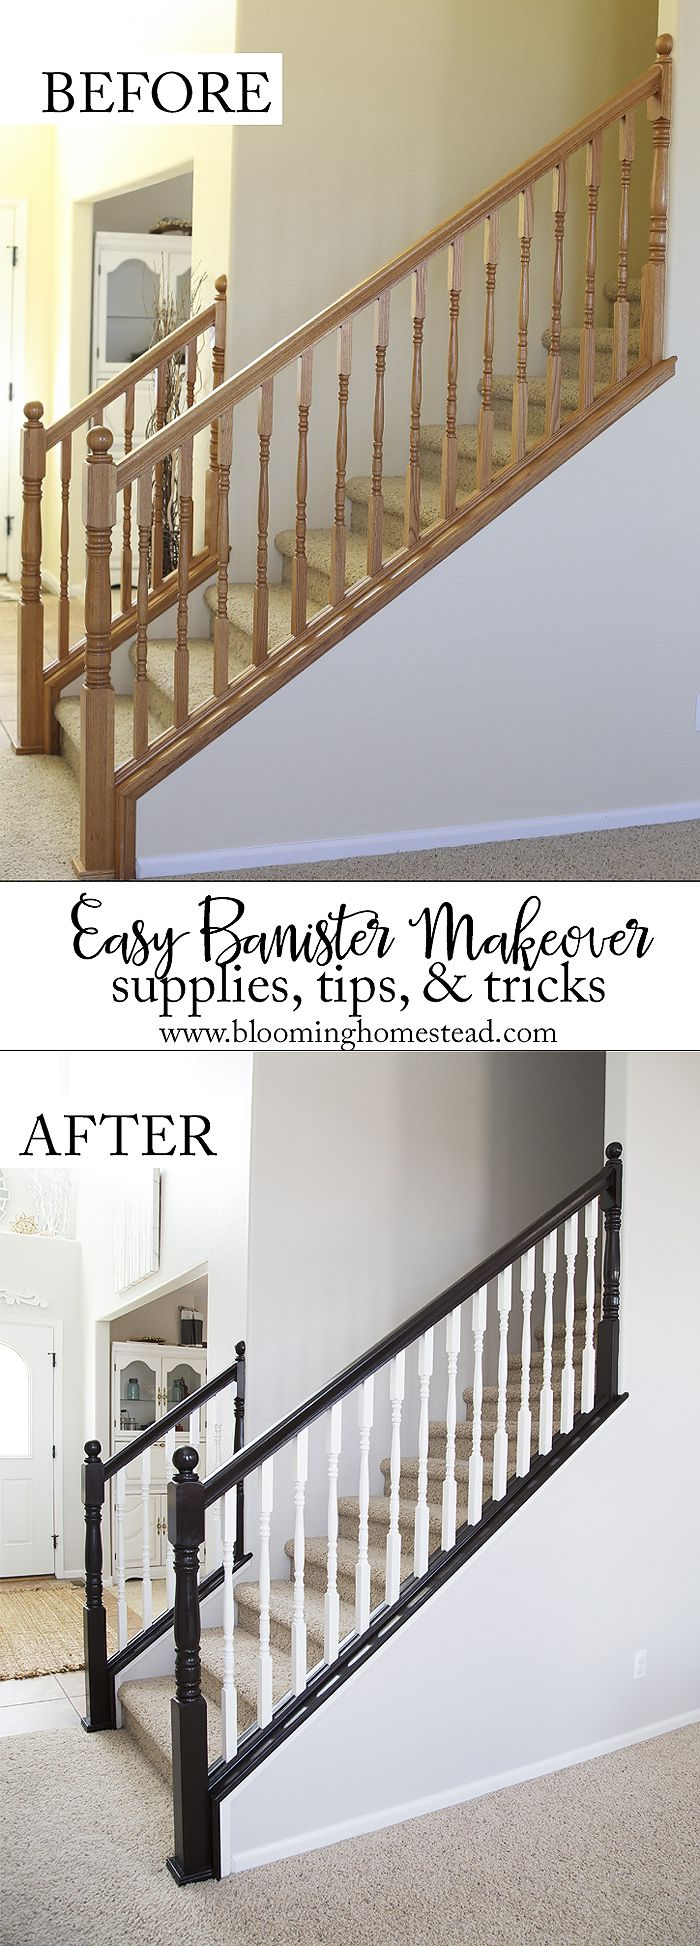 You won't believe this gorgeous stair railing makeover! And you can do it too! Be sure to check out these tips and tricks to avoid running into common issues that can arise.